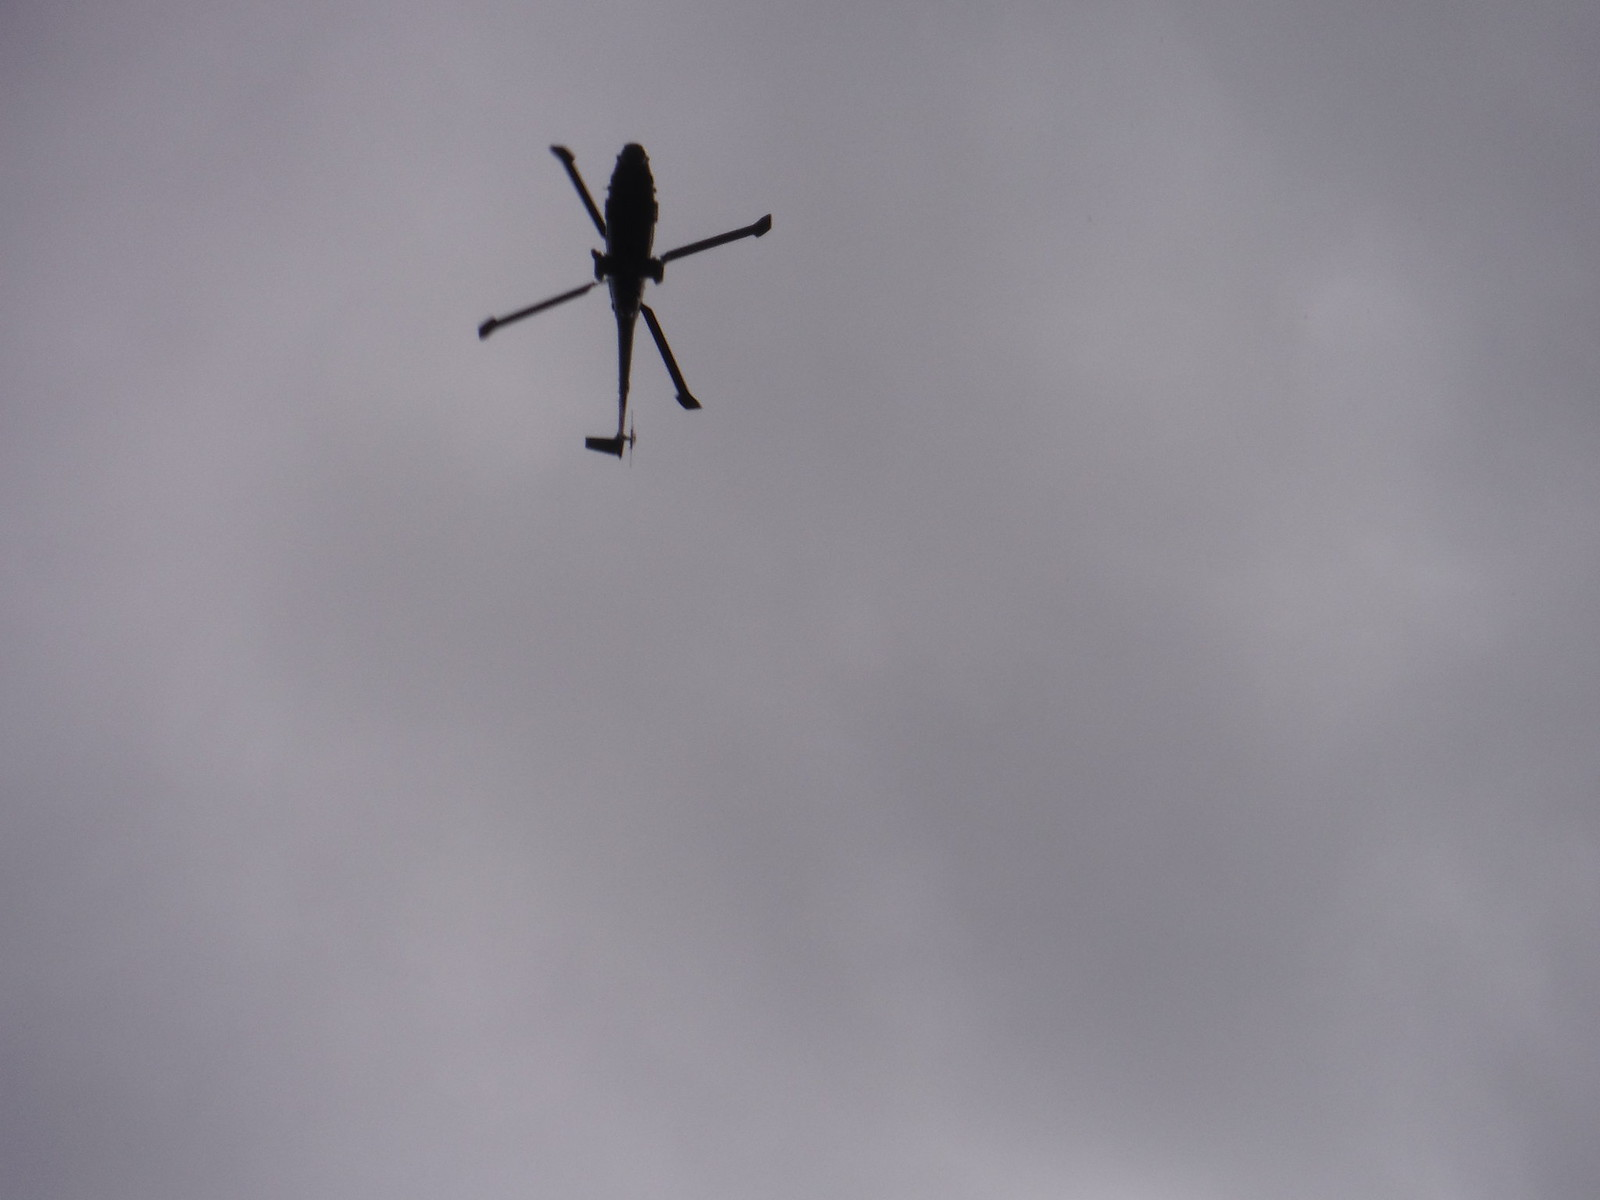 Helicopter above SWC Walk 251 Tisbury Circular via Ludwell and Berwick St. John